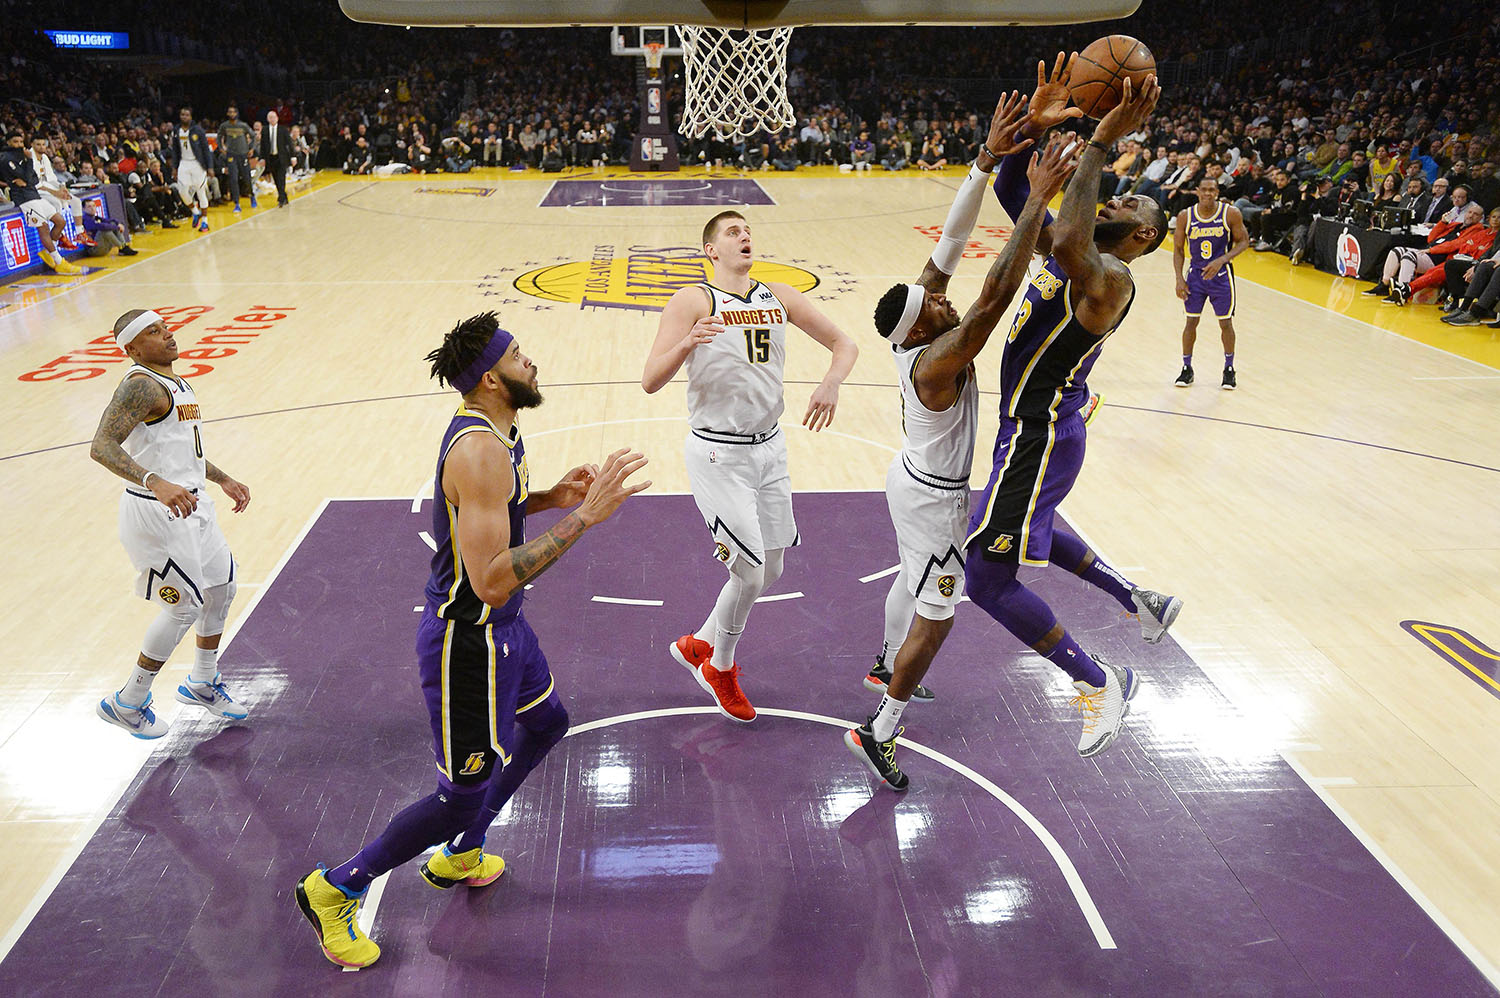 LeBron James #23 of the Los Angeles Lakers scores to pass Michael Jordan and move to #4 on the NBA´s all-time scoring list- AFp